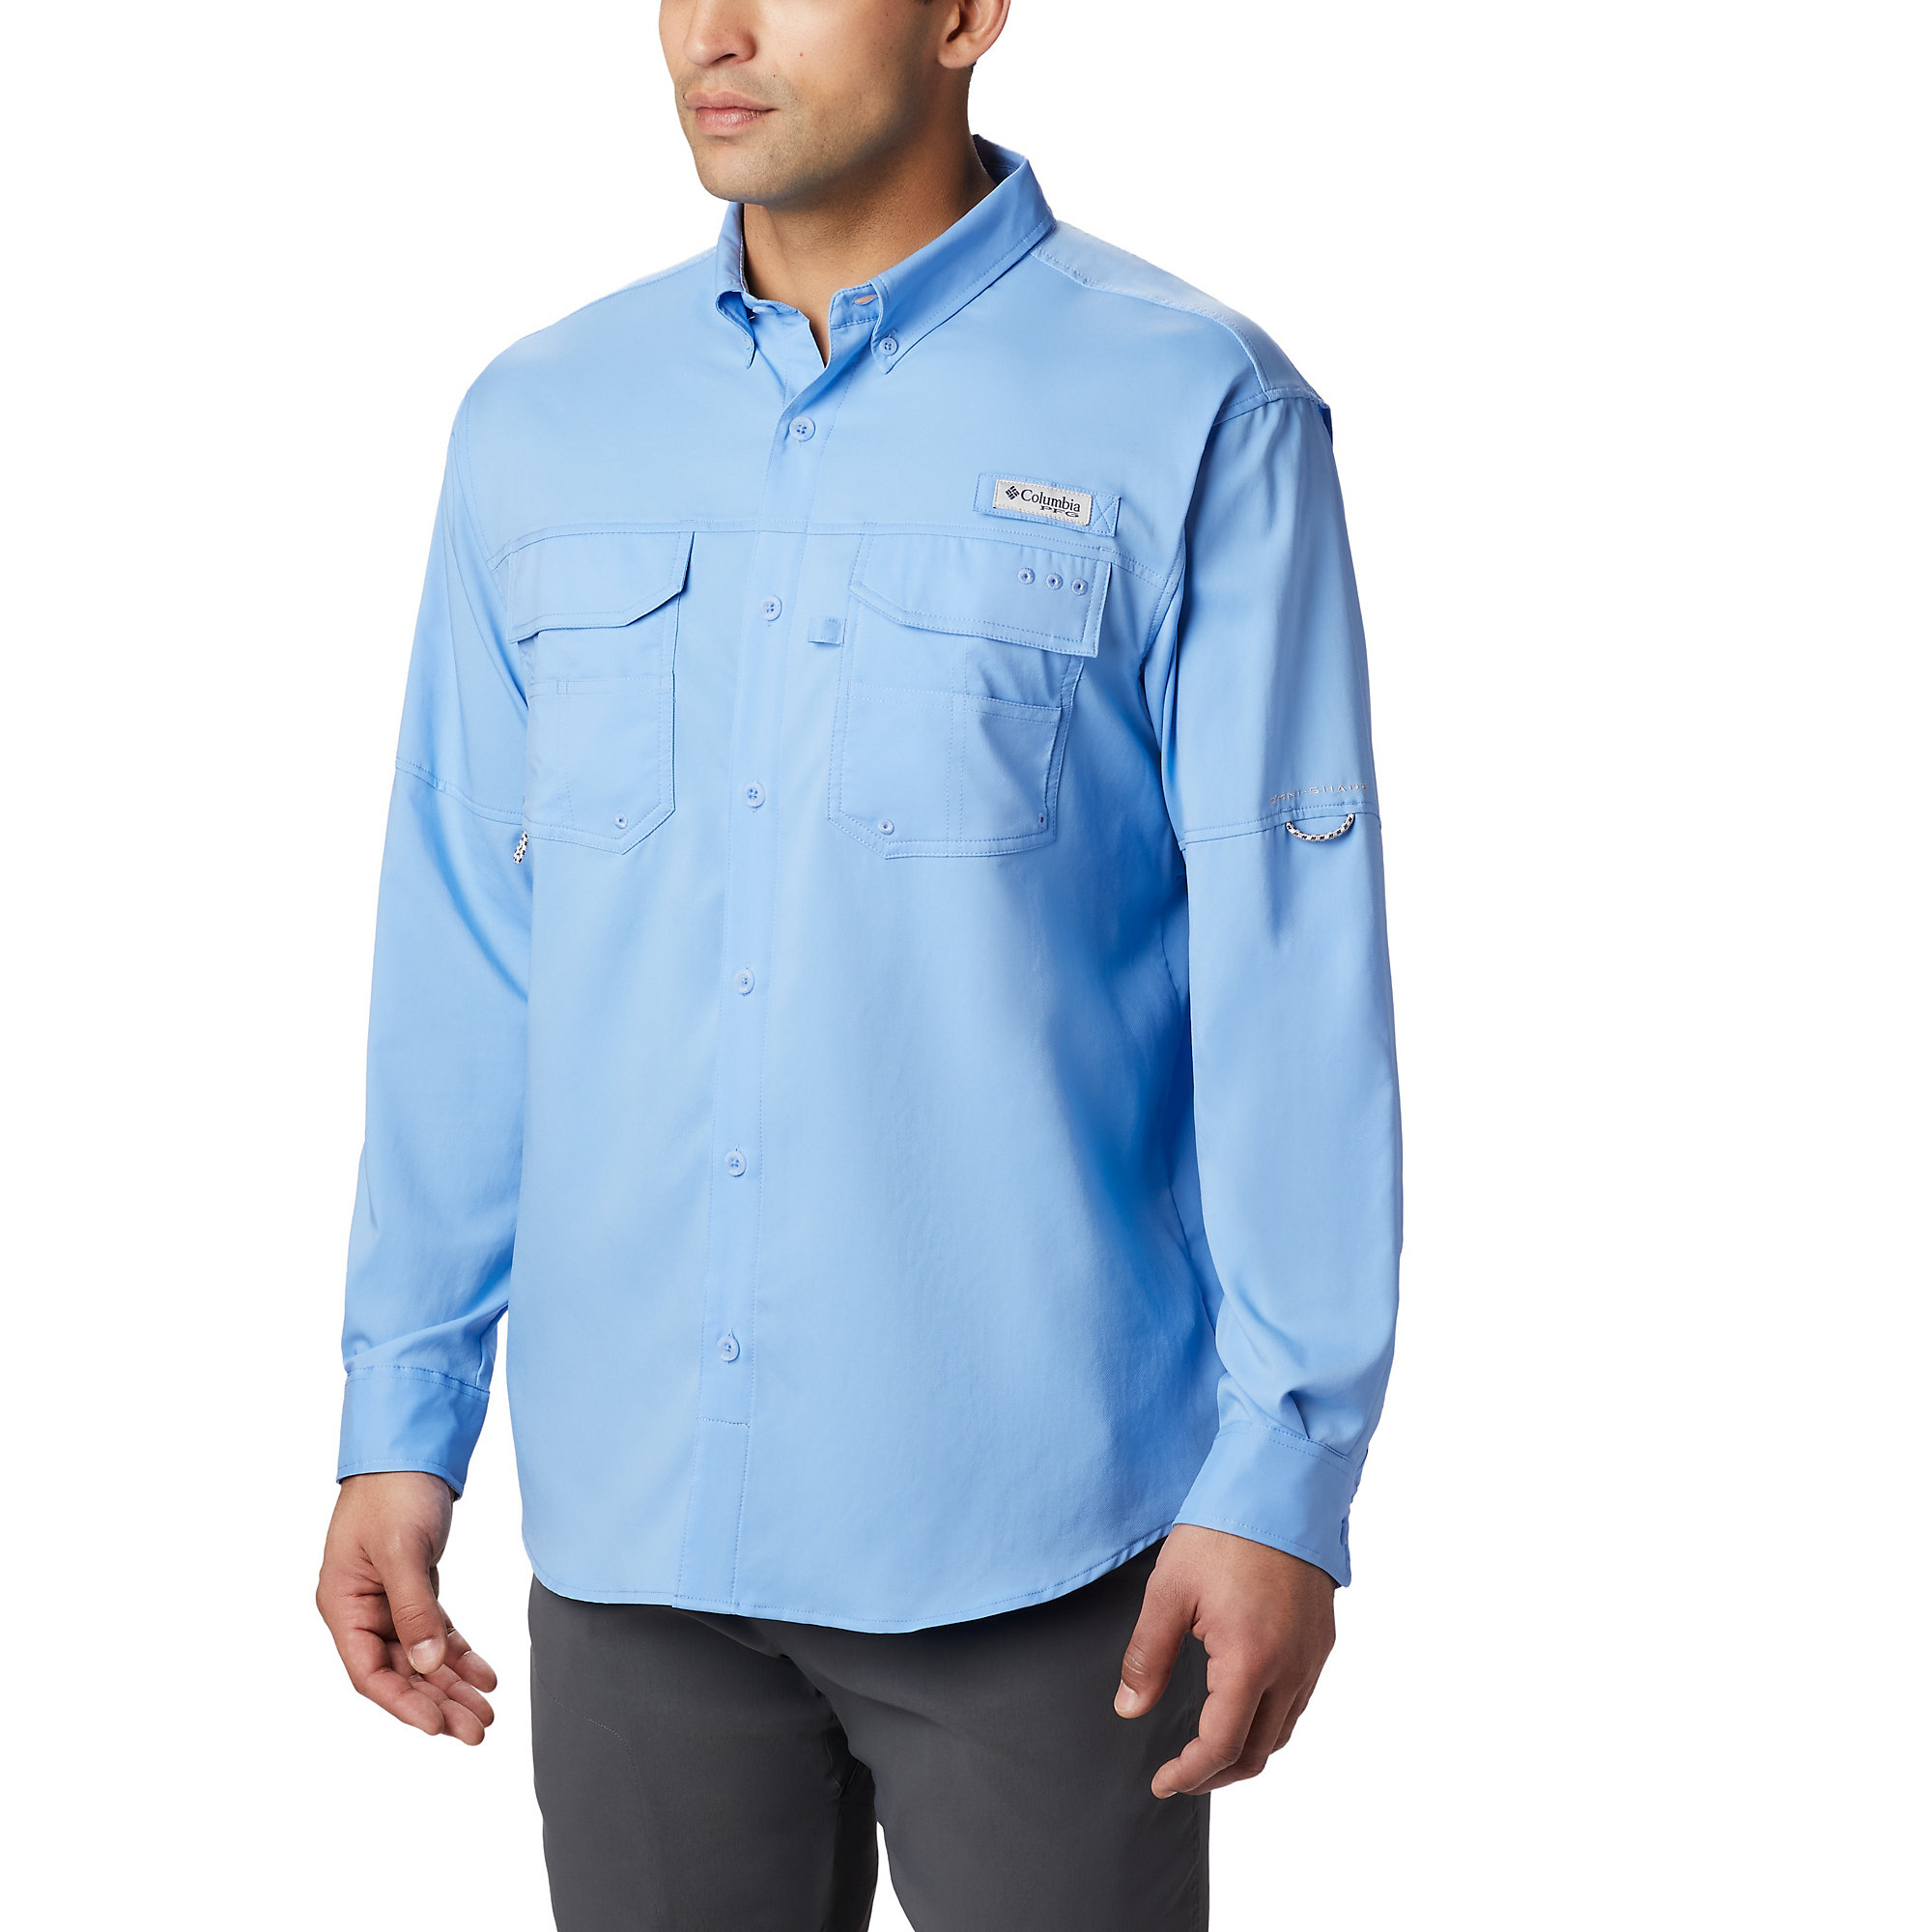 d150dc2ae86 ... Shirt, White UPC 888458864678 product image for Columbia Blood and Guts  III LS Woven S XL- Blue